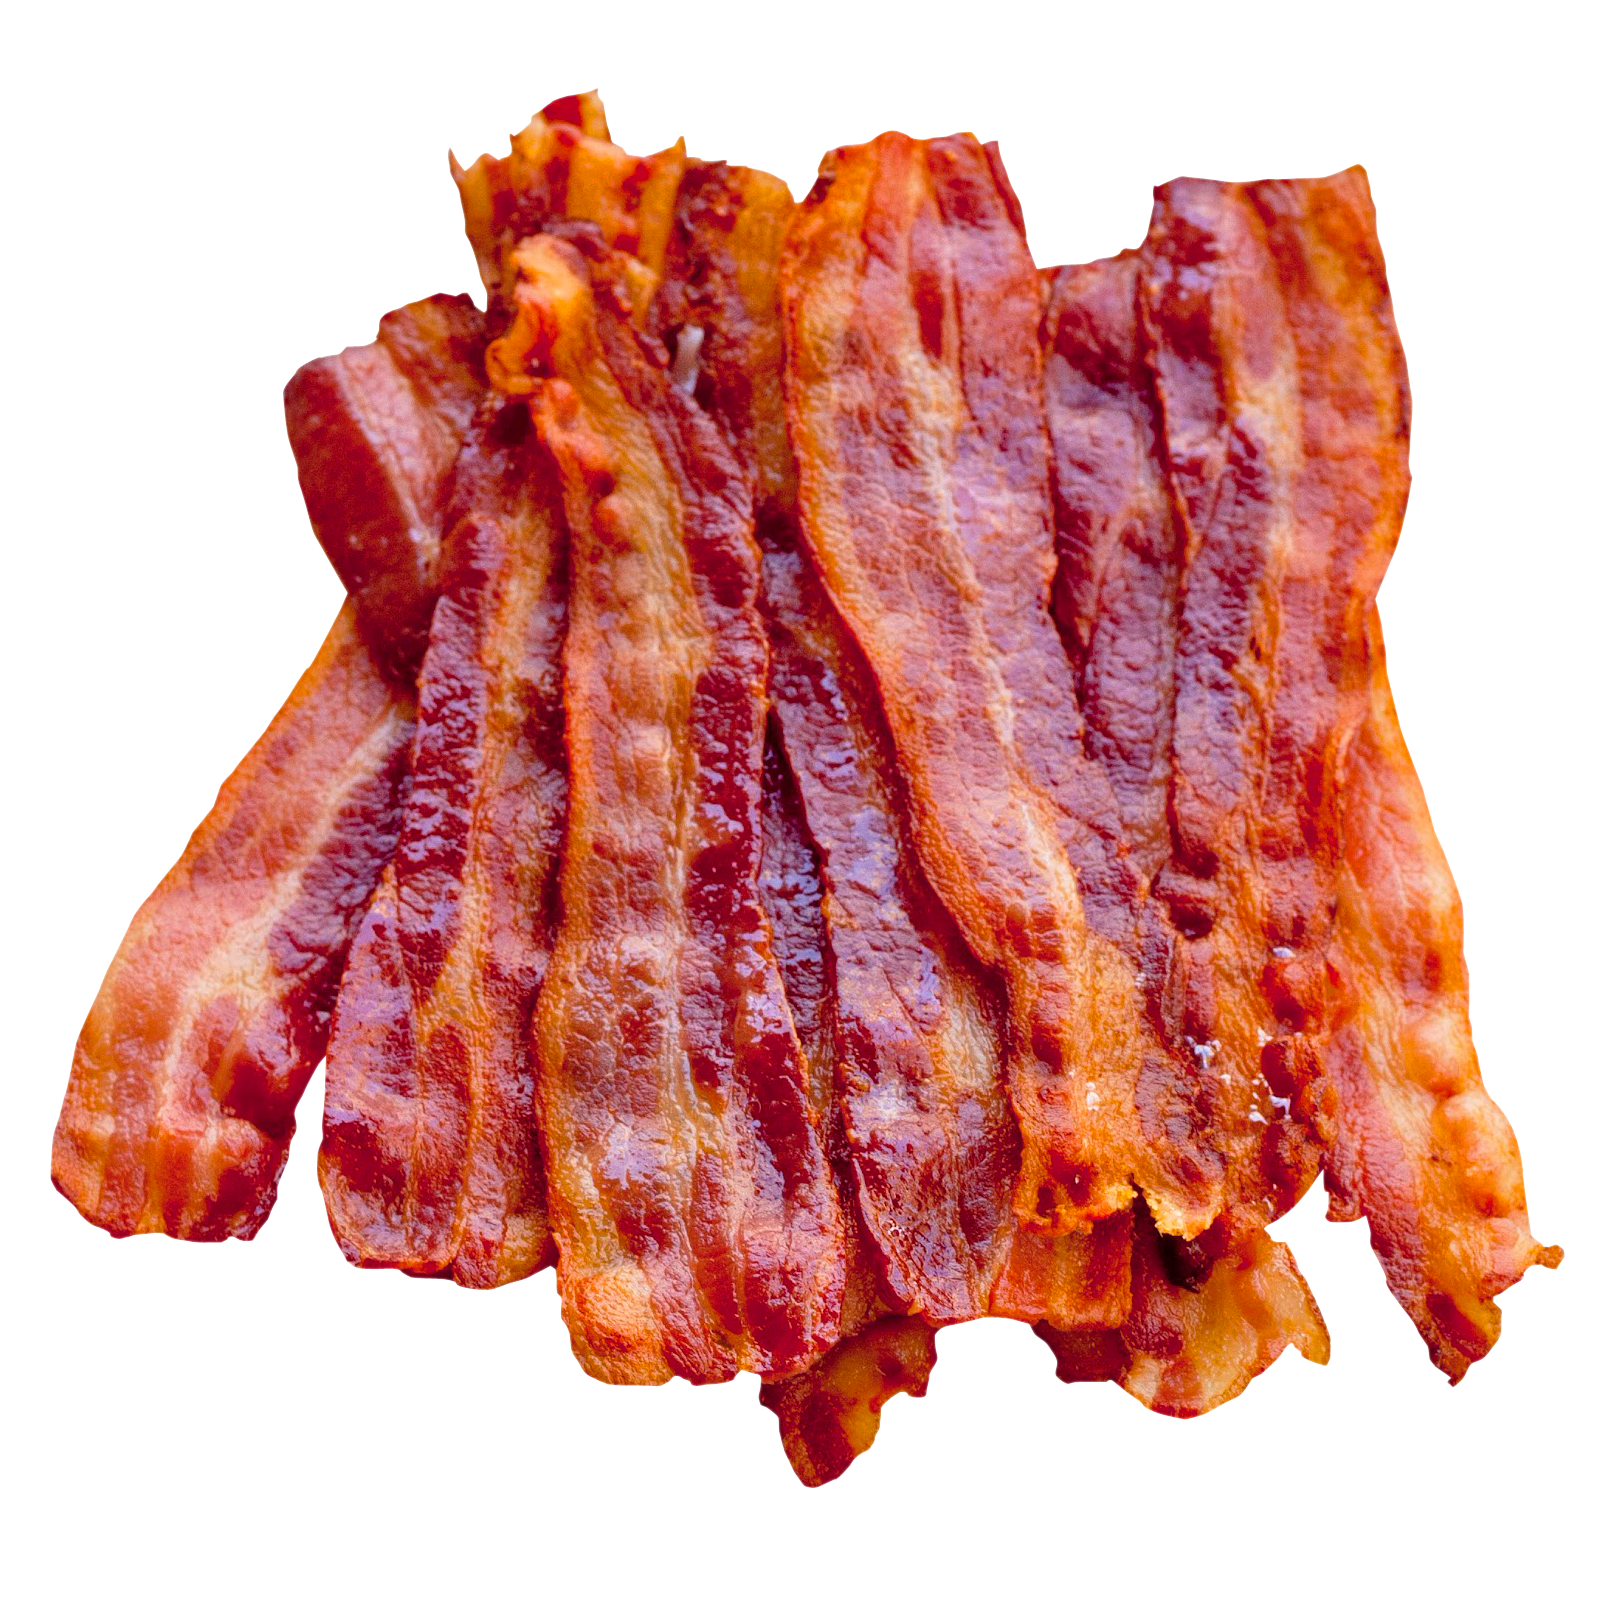 Bacon PNG - 7781